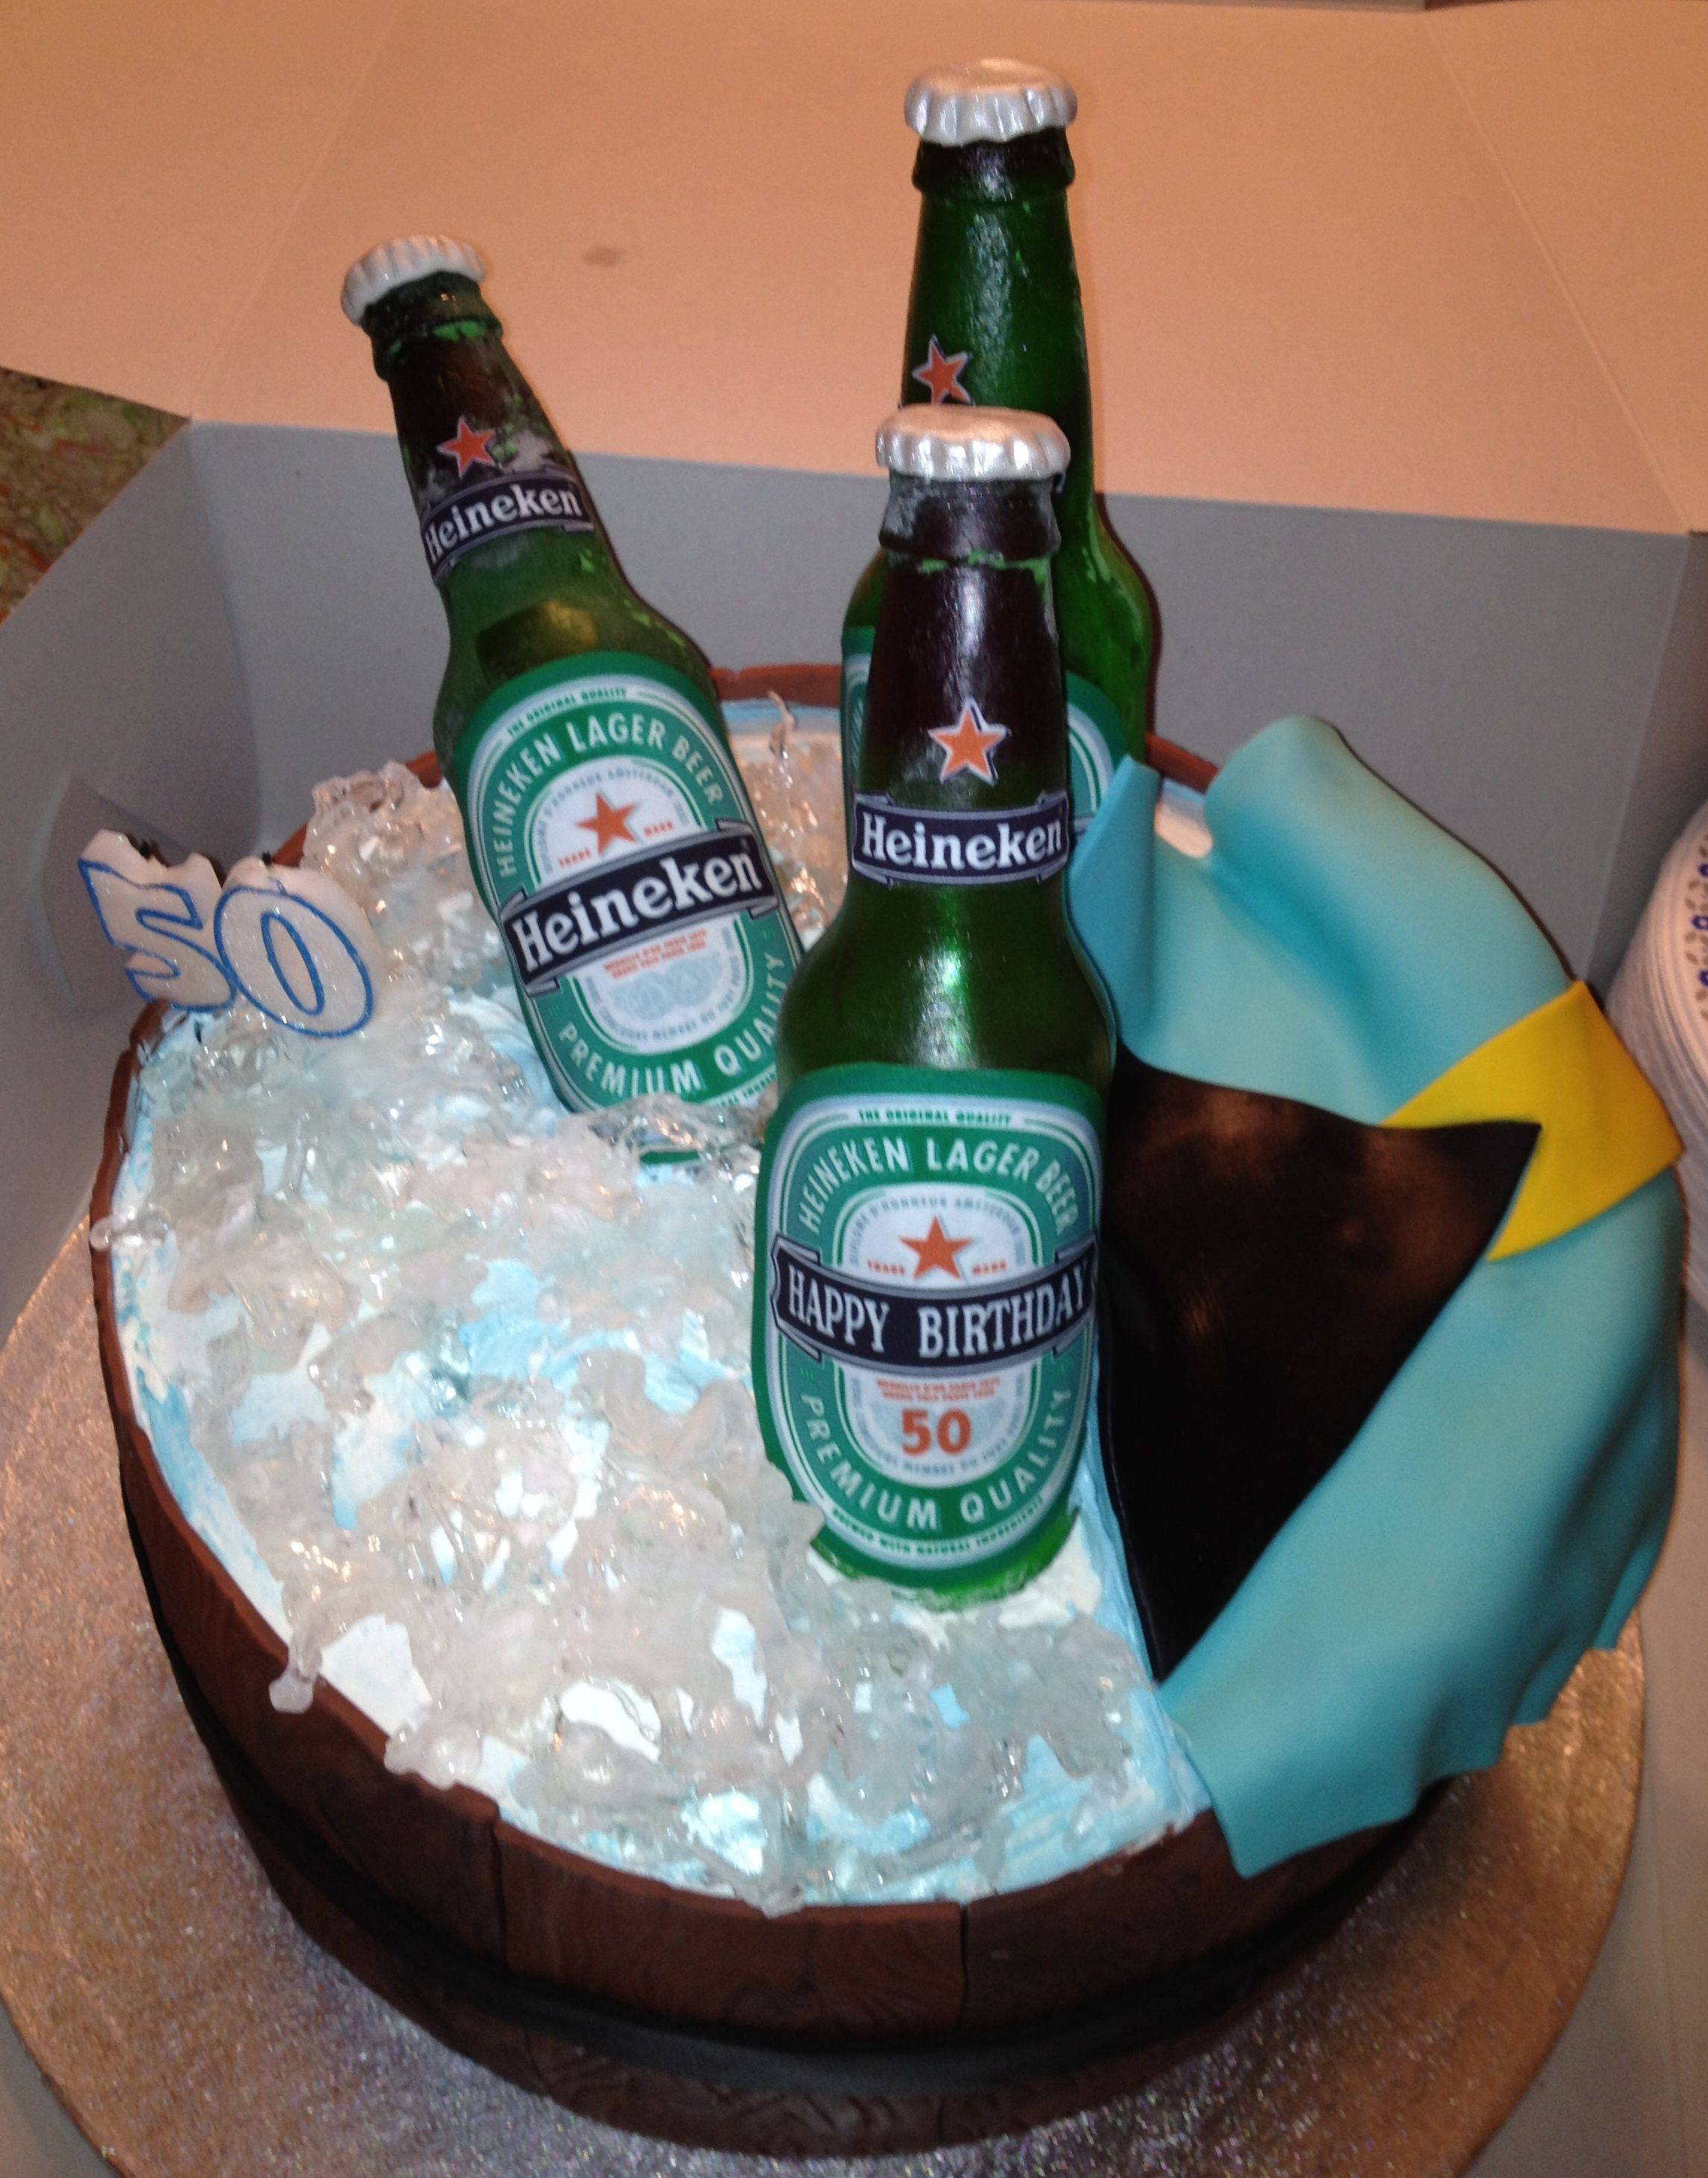 Heineken Bottles In A Barrel Of Ice With Bahamas Flag By Cathie